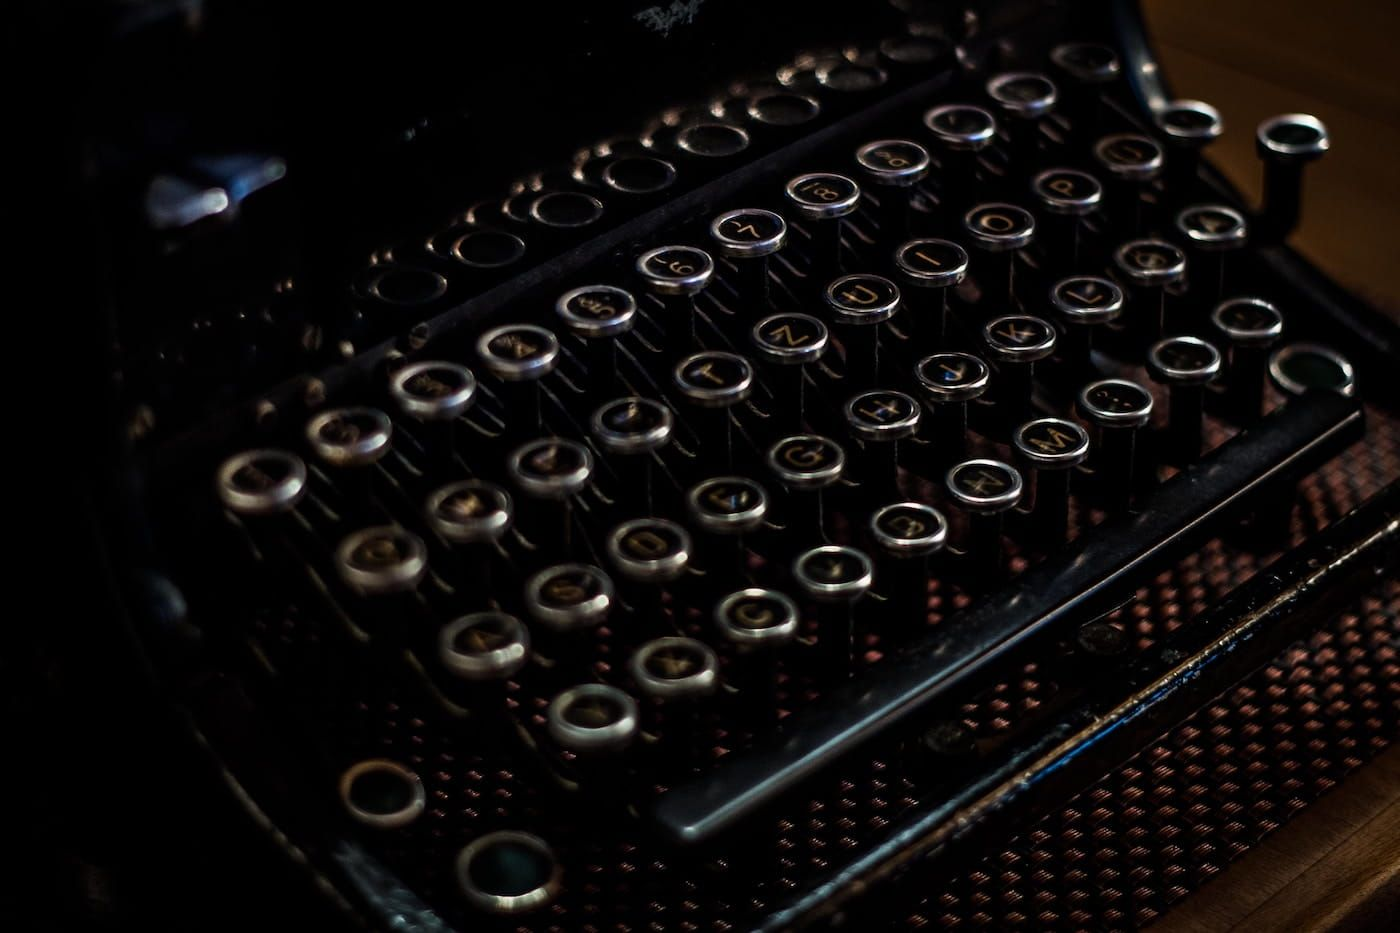 The acronym that changed how I write